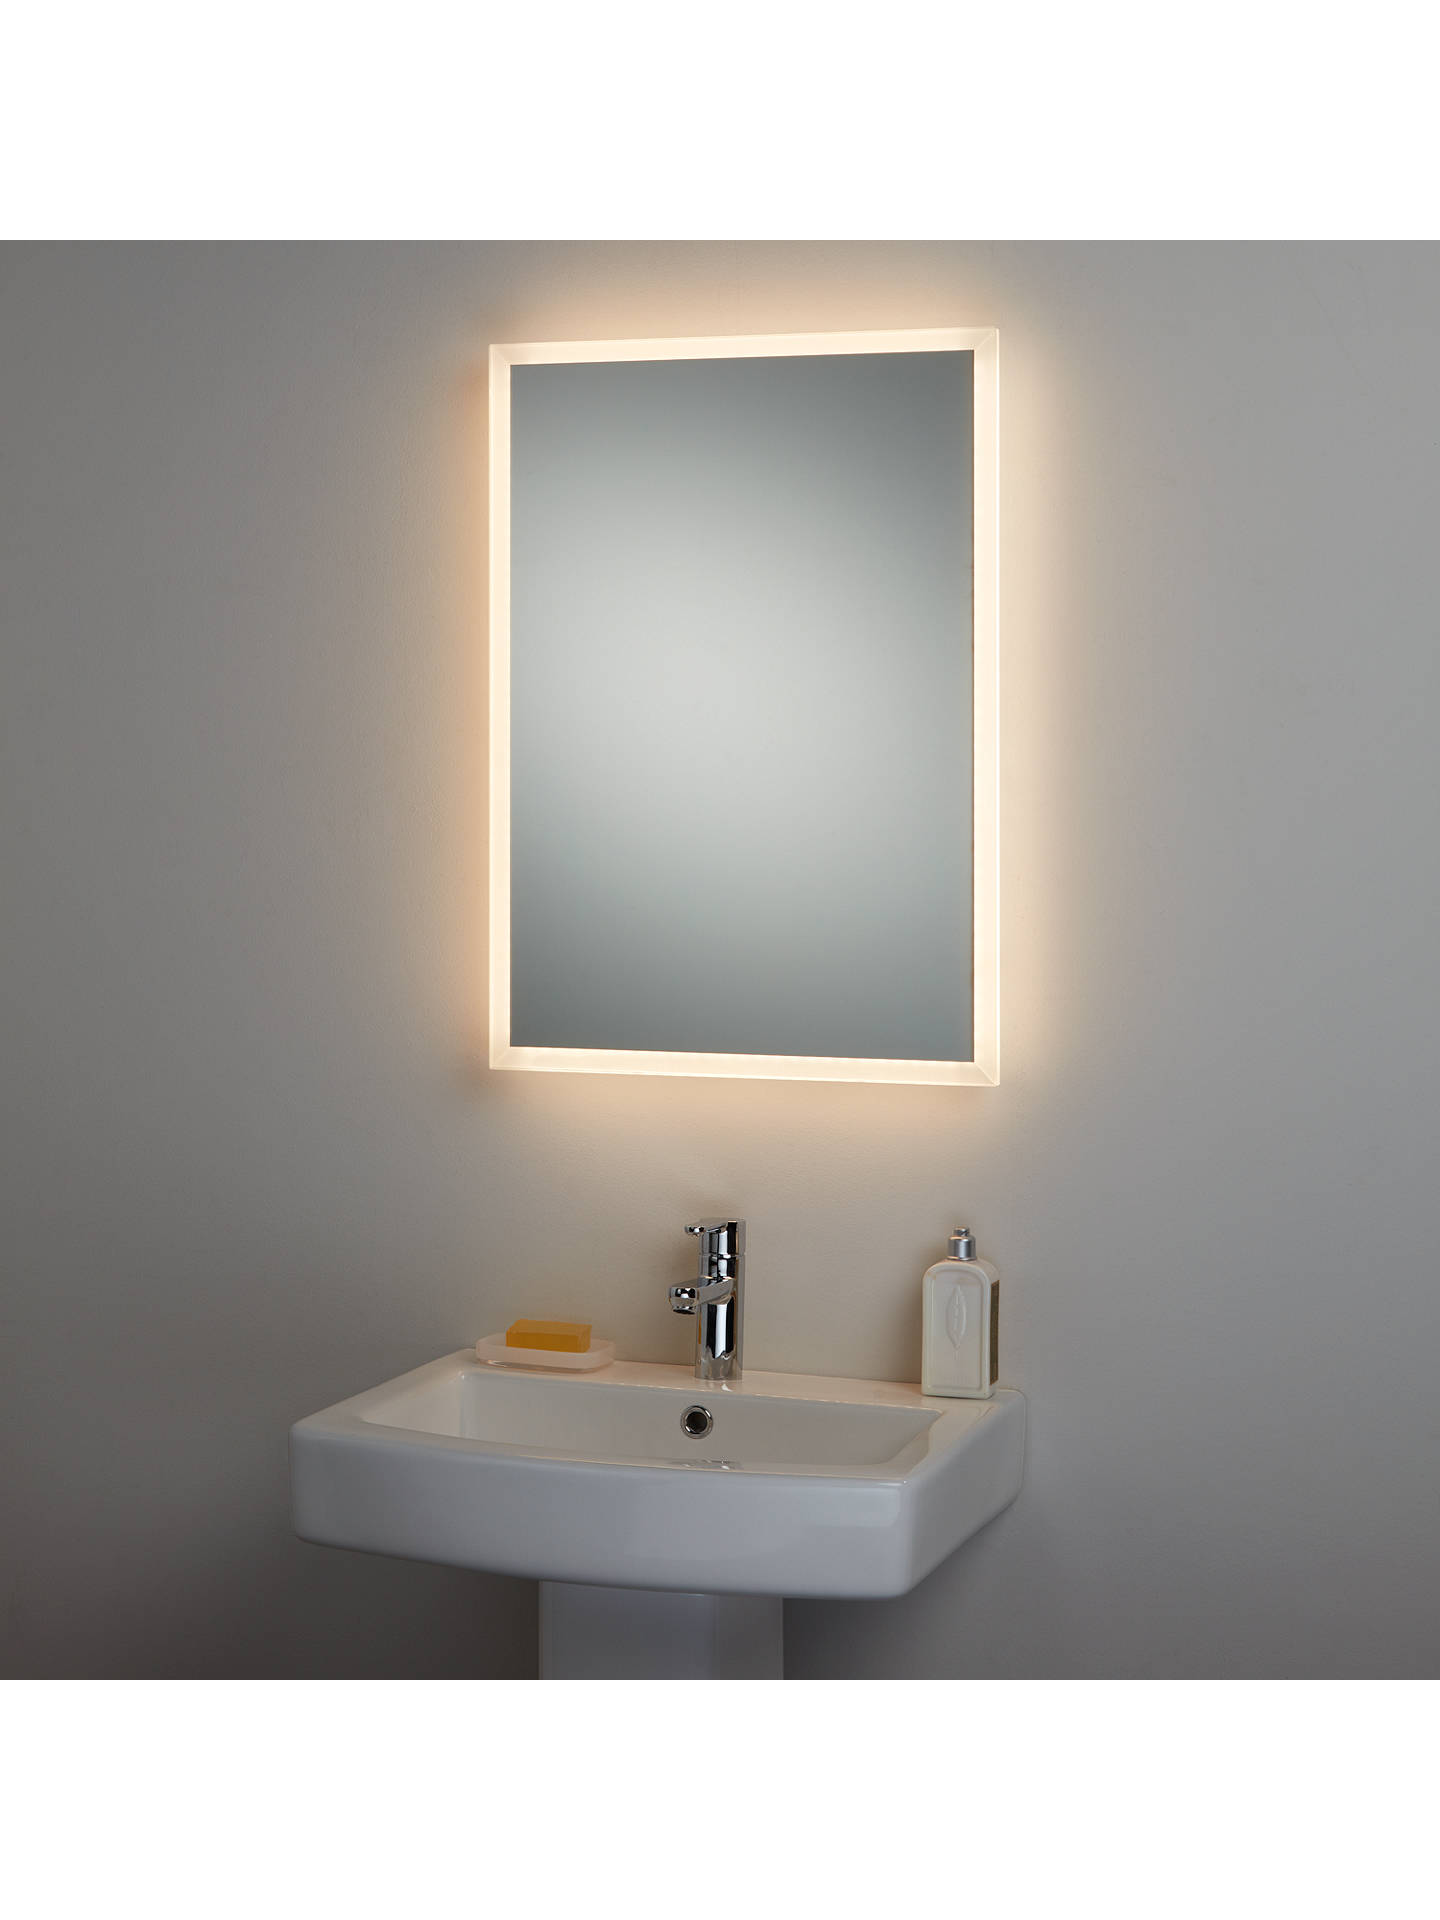 BuyJohn Lewis & Partners Colour Changing Glow Bathroom Mirror Online at johnlewis.com